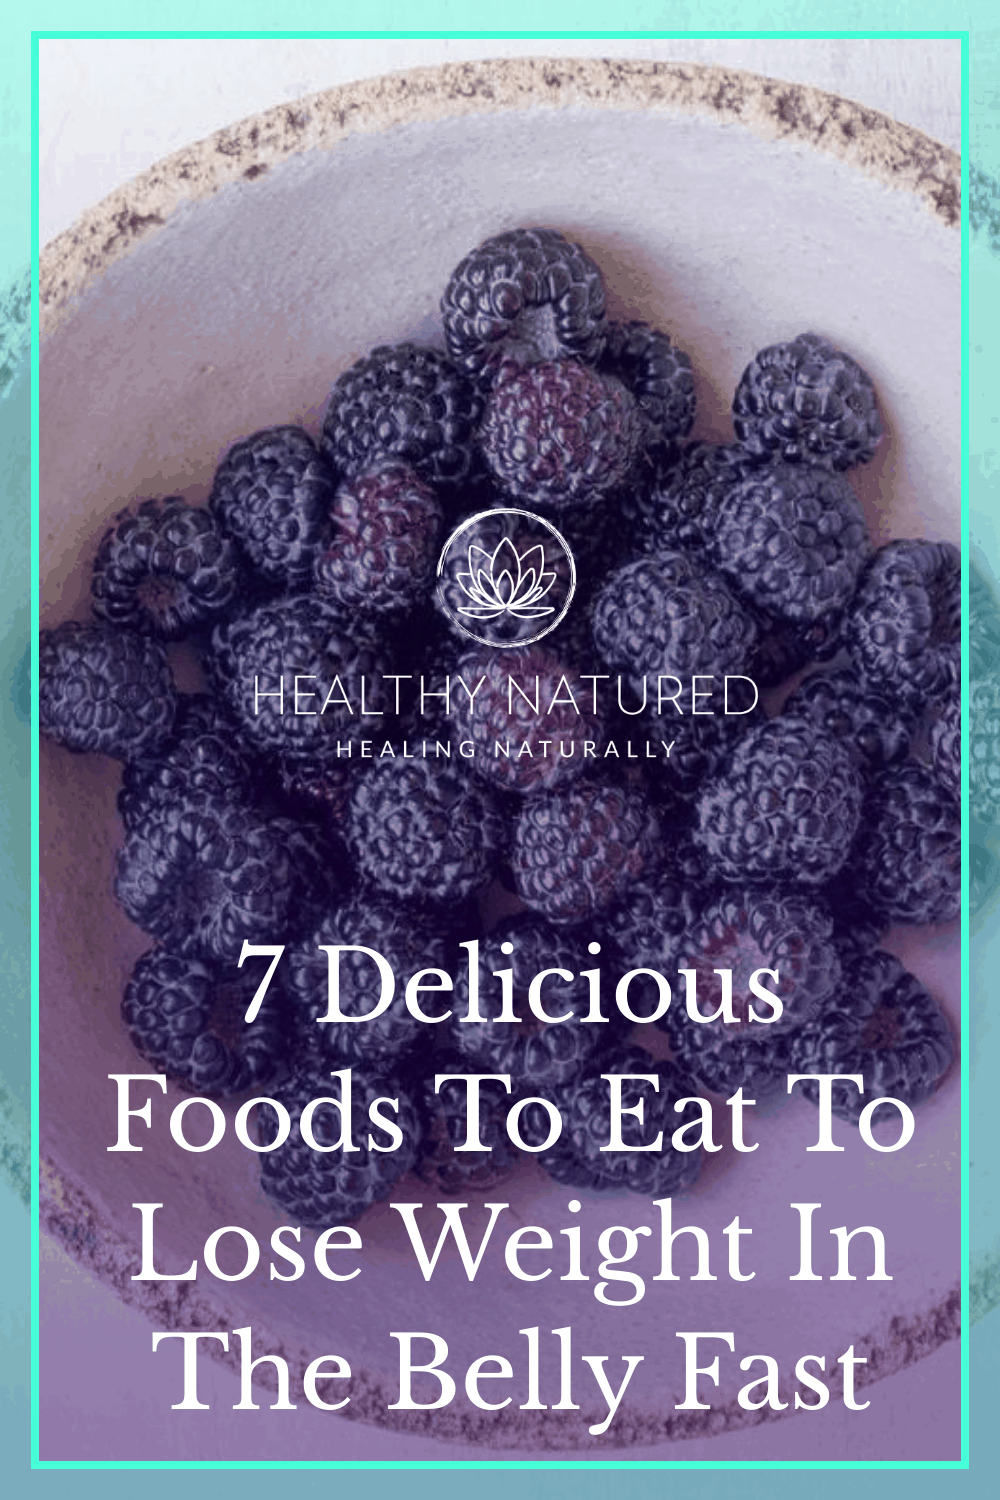 7 Delicious Foods To Eat To Lose Weight In The Belly Fast